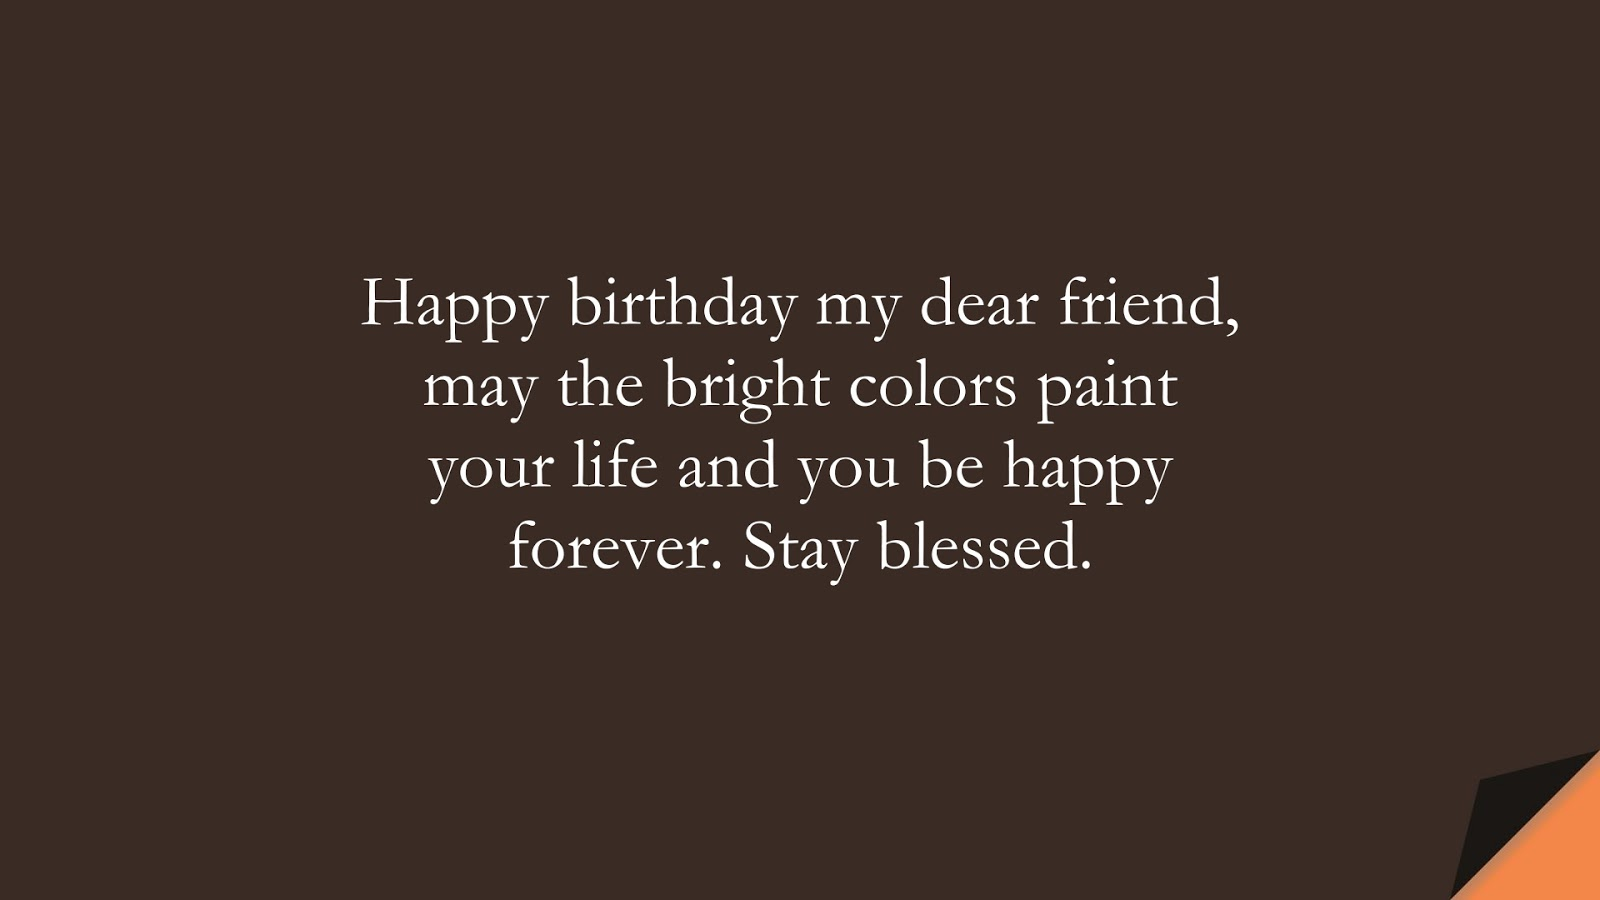 Happy birthday my dear friend, may the bright colors paint your life and you be happy forever. Stay blessed.FALSE